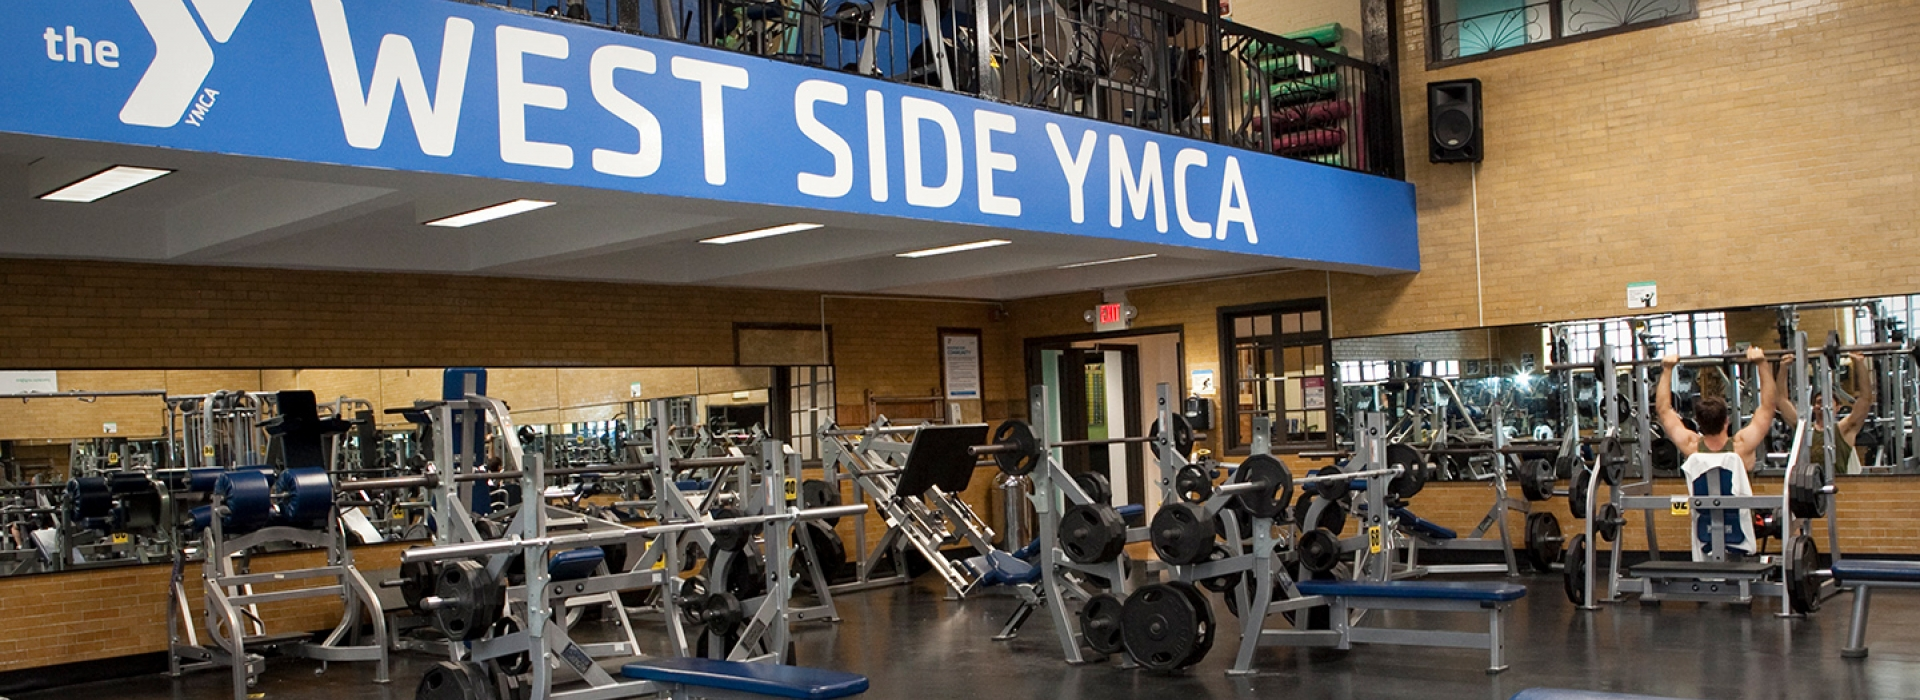 New York City Hotel & Hostel Rooms at the West Side YMCA